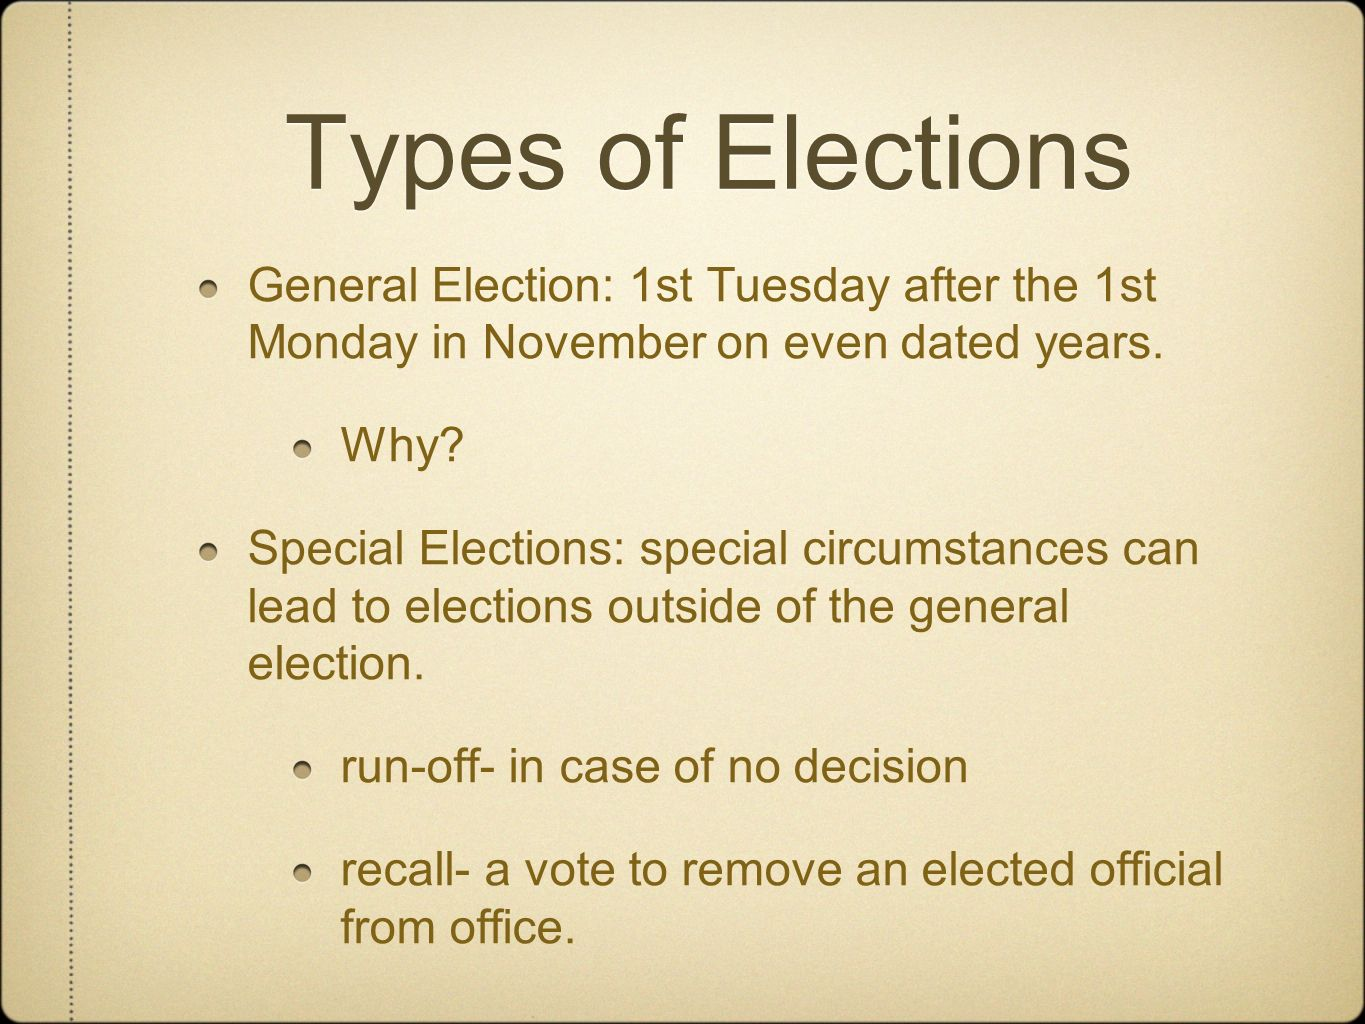 Types of Elections General Election: 1st Tuesday after the 1st Monday in November on even dated years.